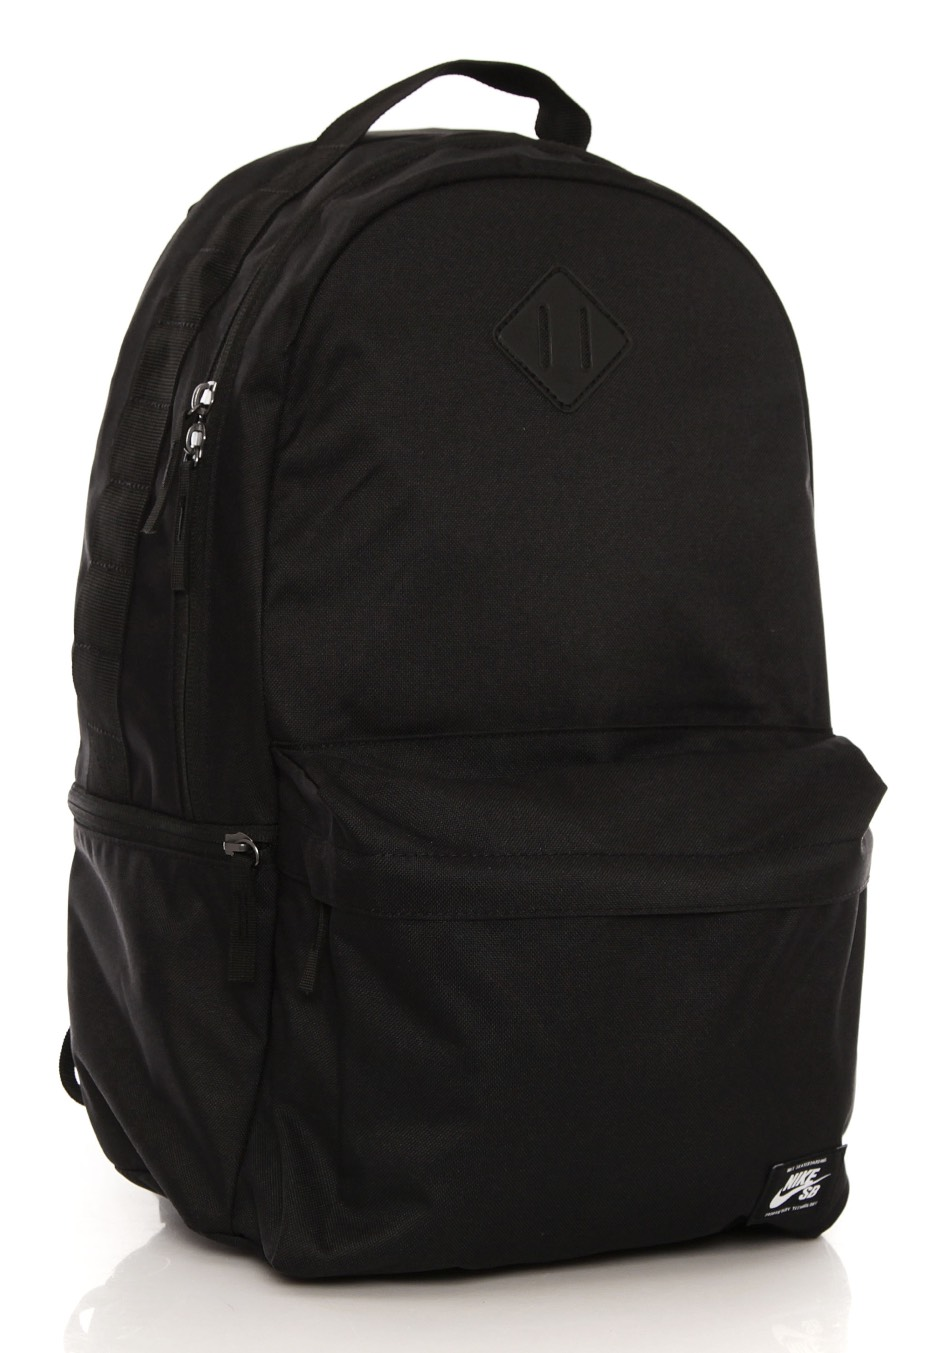 416d0523648e Nike - SB Icon Black White - Backpack - Streetwear Shop - Impericon.com  Worldwide